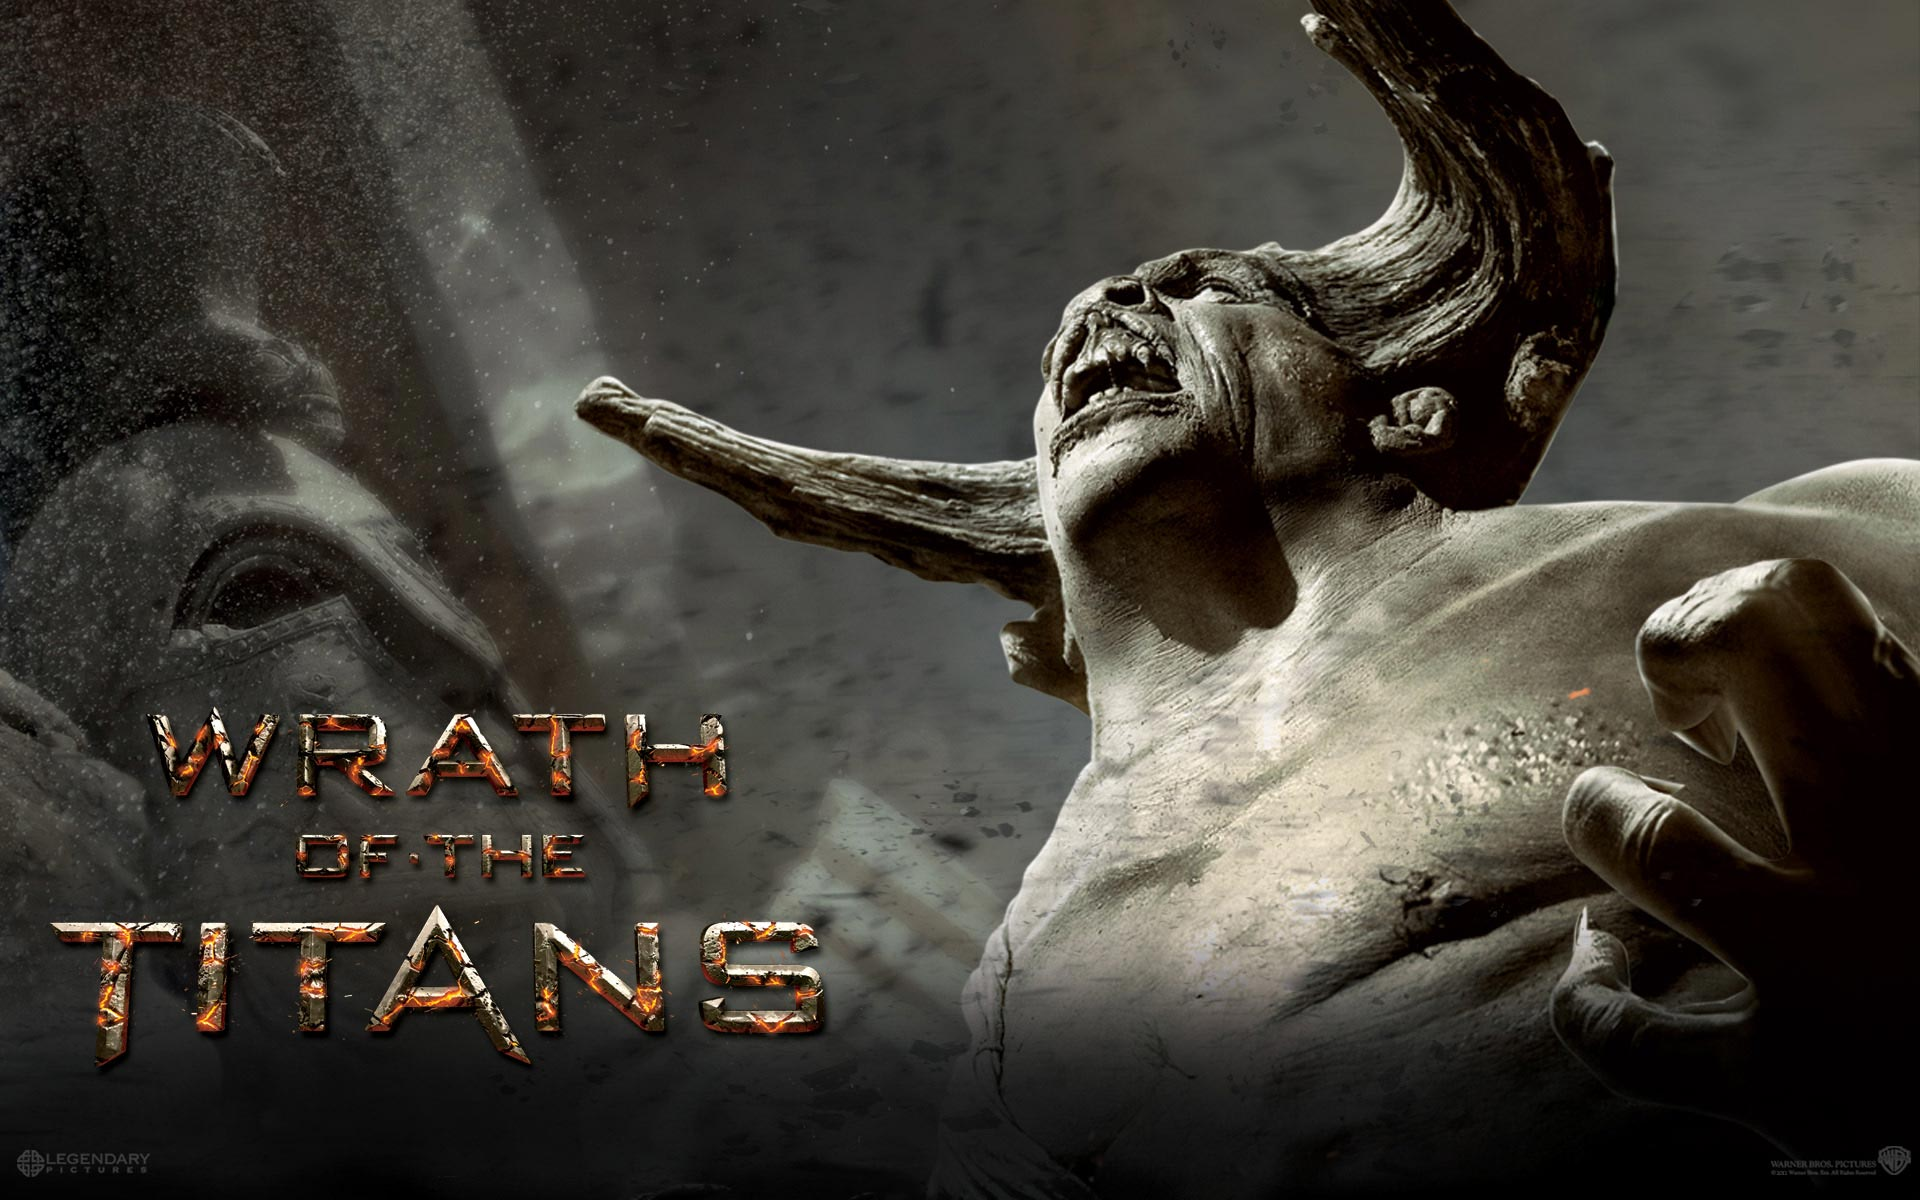 WRATH OF THE TITANS Wallpapers - FilmoFilia